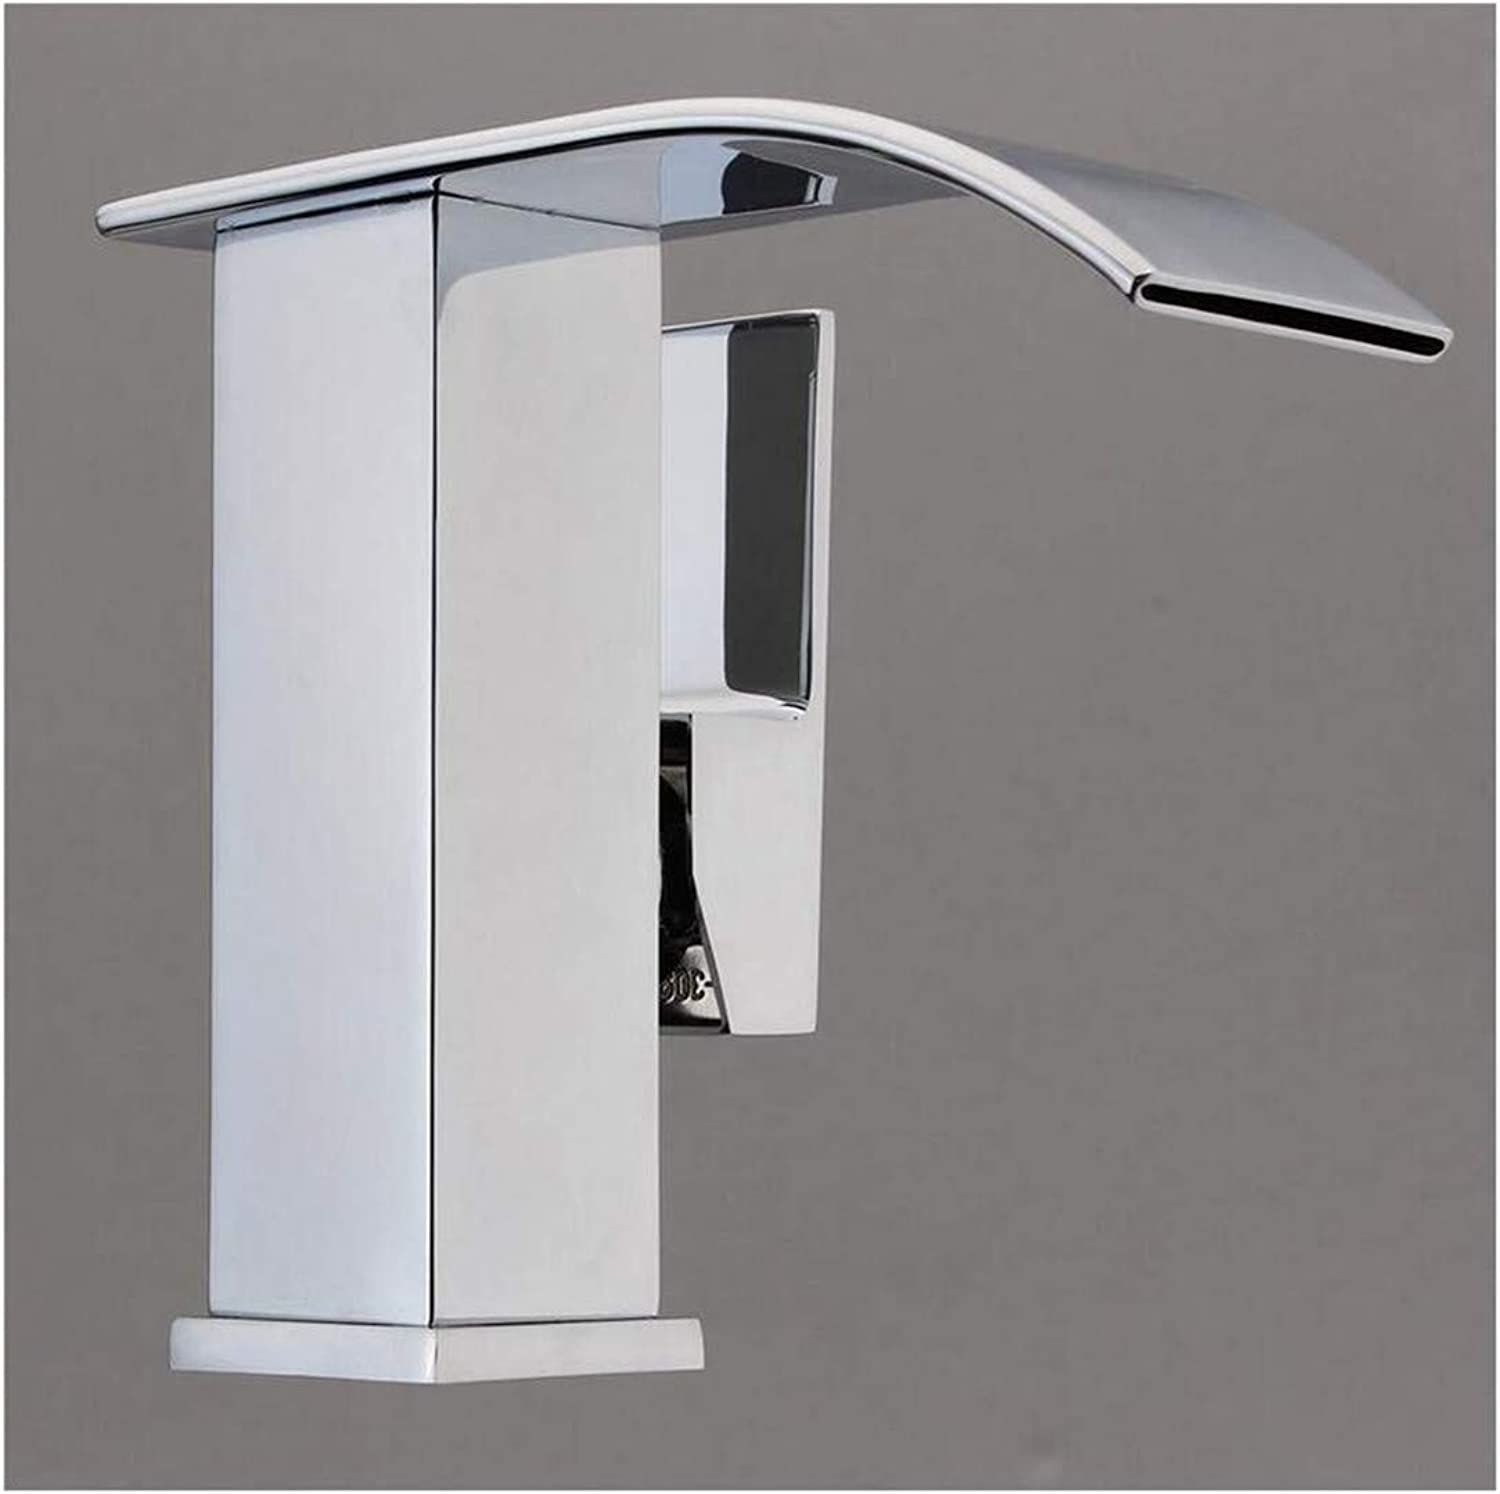 Kitchen Bath Basin Sink Bathroom Taps Taps Mixer Faucet Sink Chrome Waterfall Basin Sink Faucet Ctzl0563